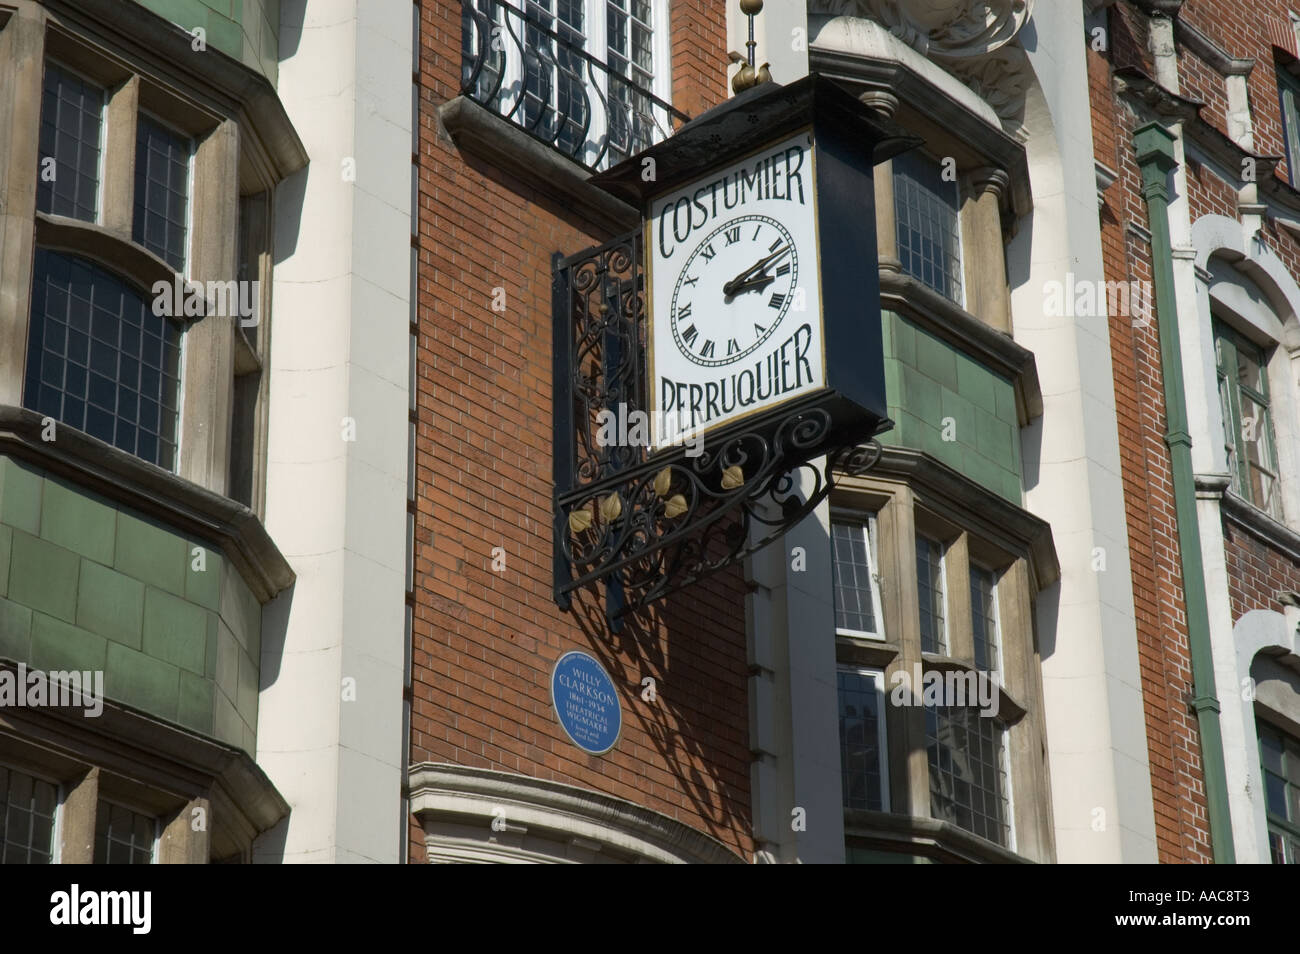 Art nouveau building in Wardour Street London UK Former home of Willy Clarkson a theatrical wigmaker. - Stock Image